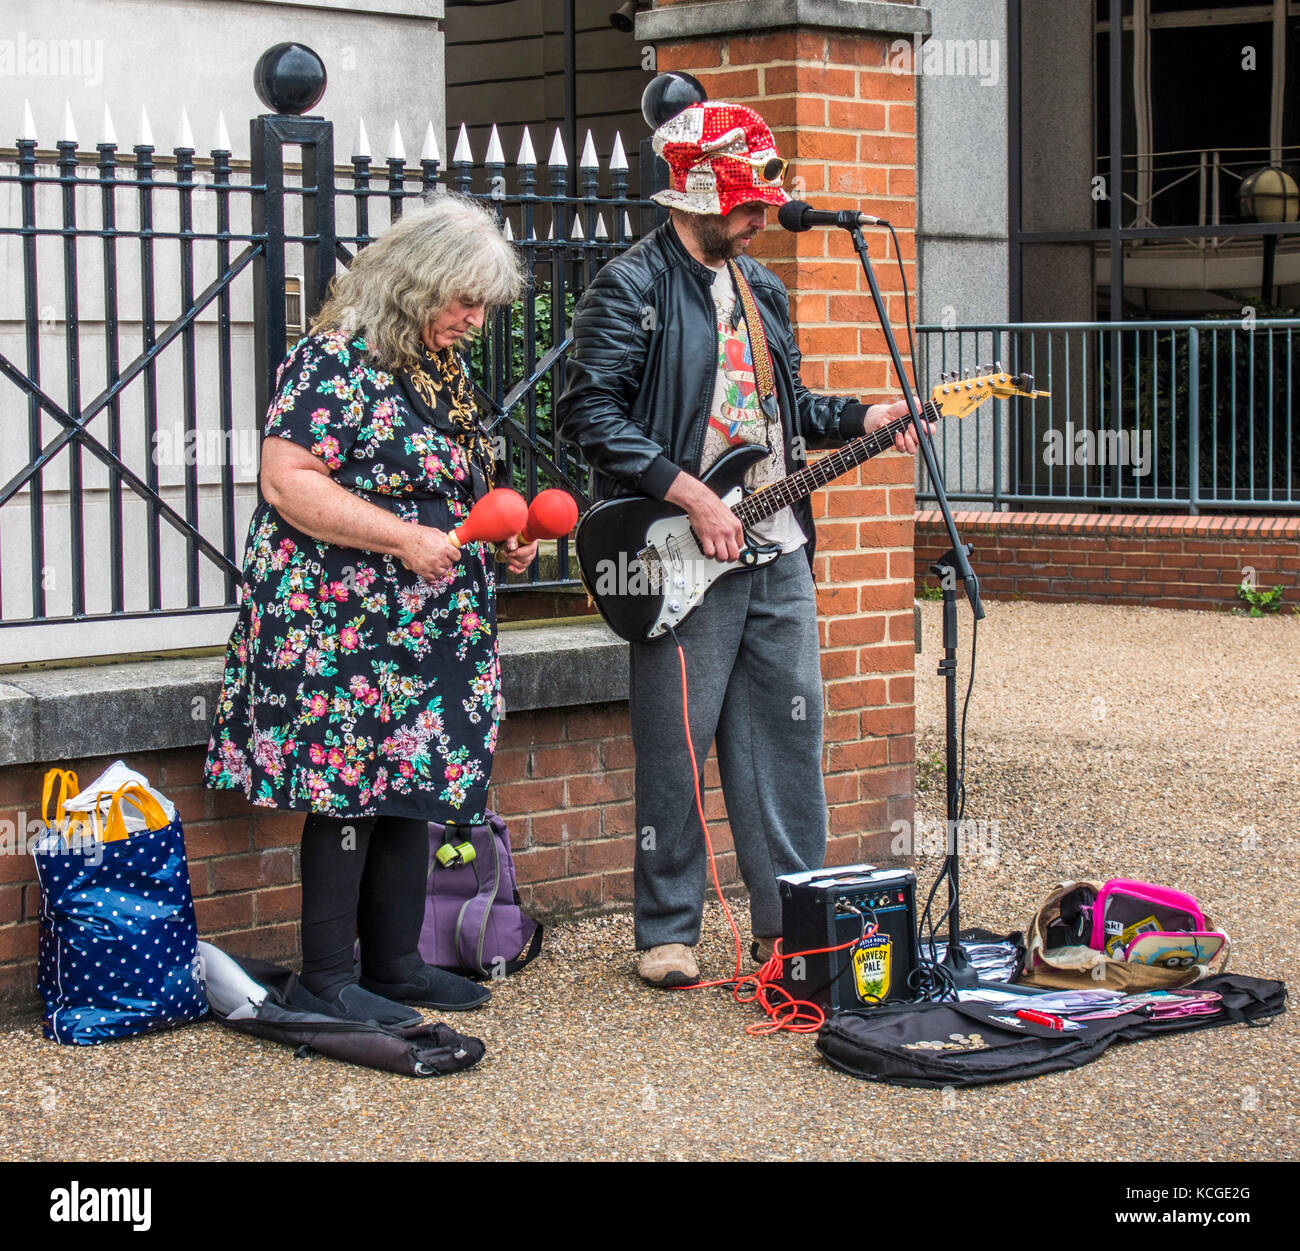 Eccentric busker / buskers: older woman and man, playing electric guitar, with microphone, amplifier and maracas. - Stock Image